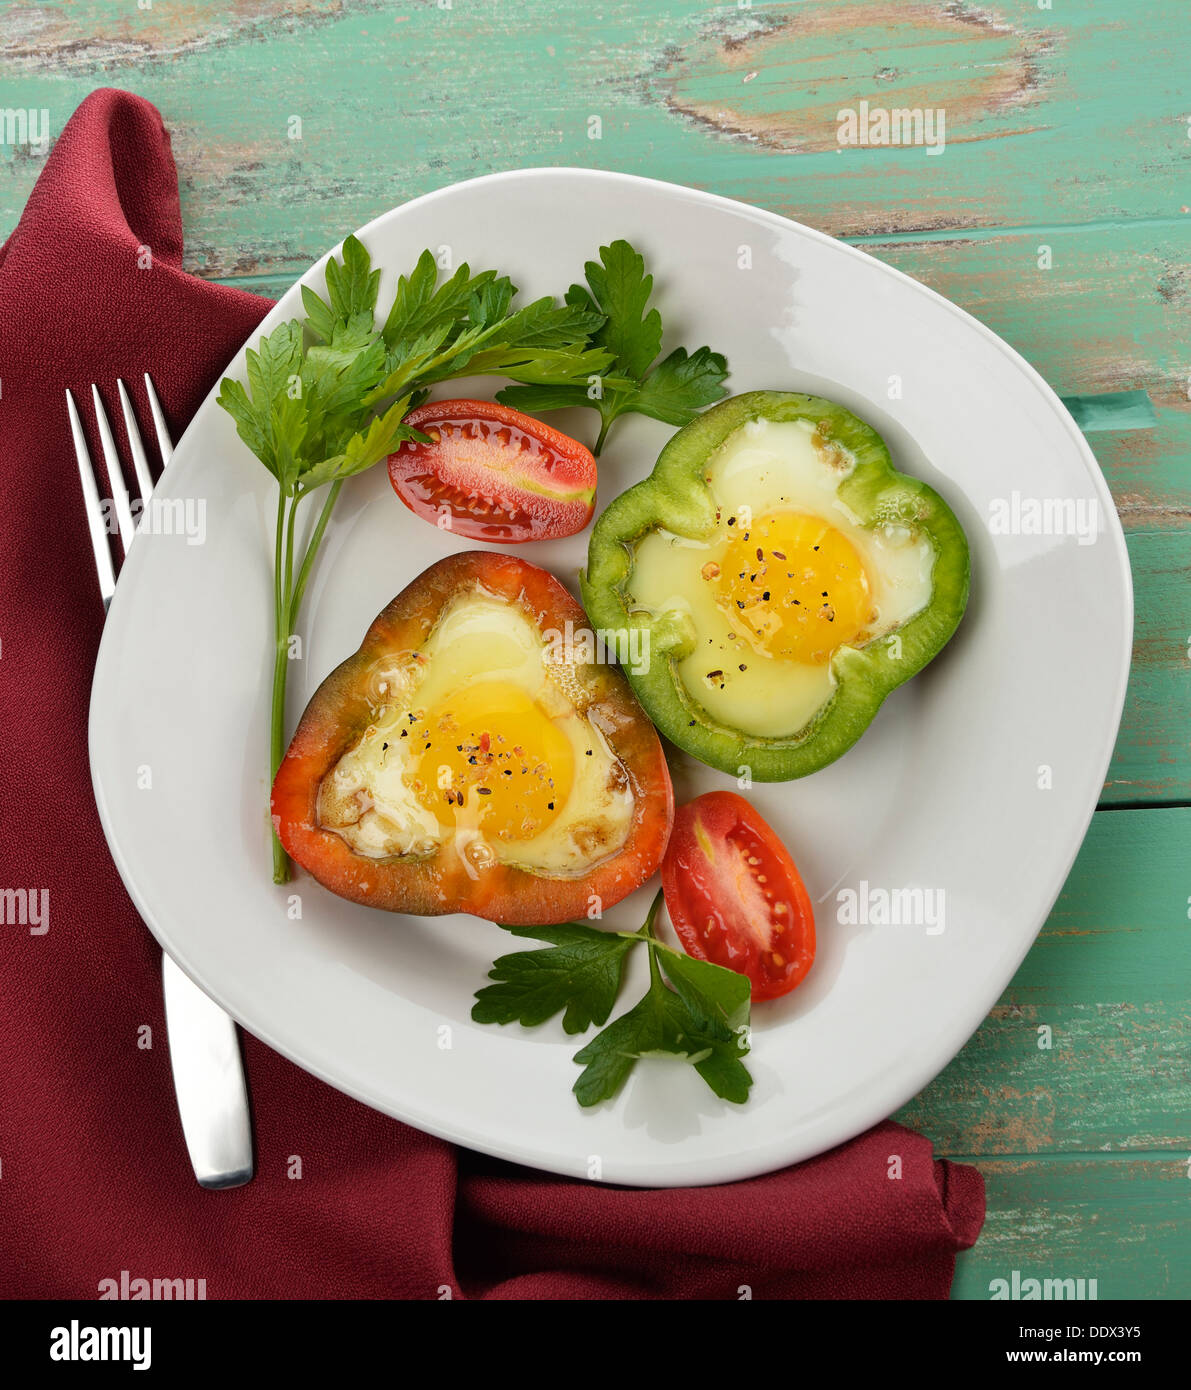 Fried Eggs In Sweet Pepper Slices Stock Photo